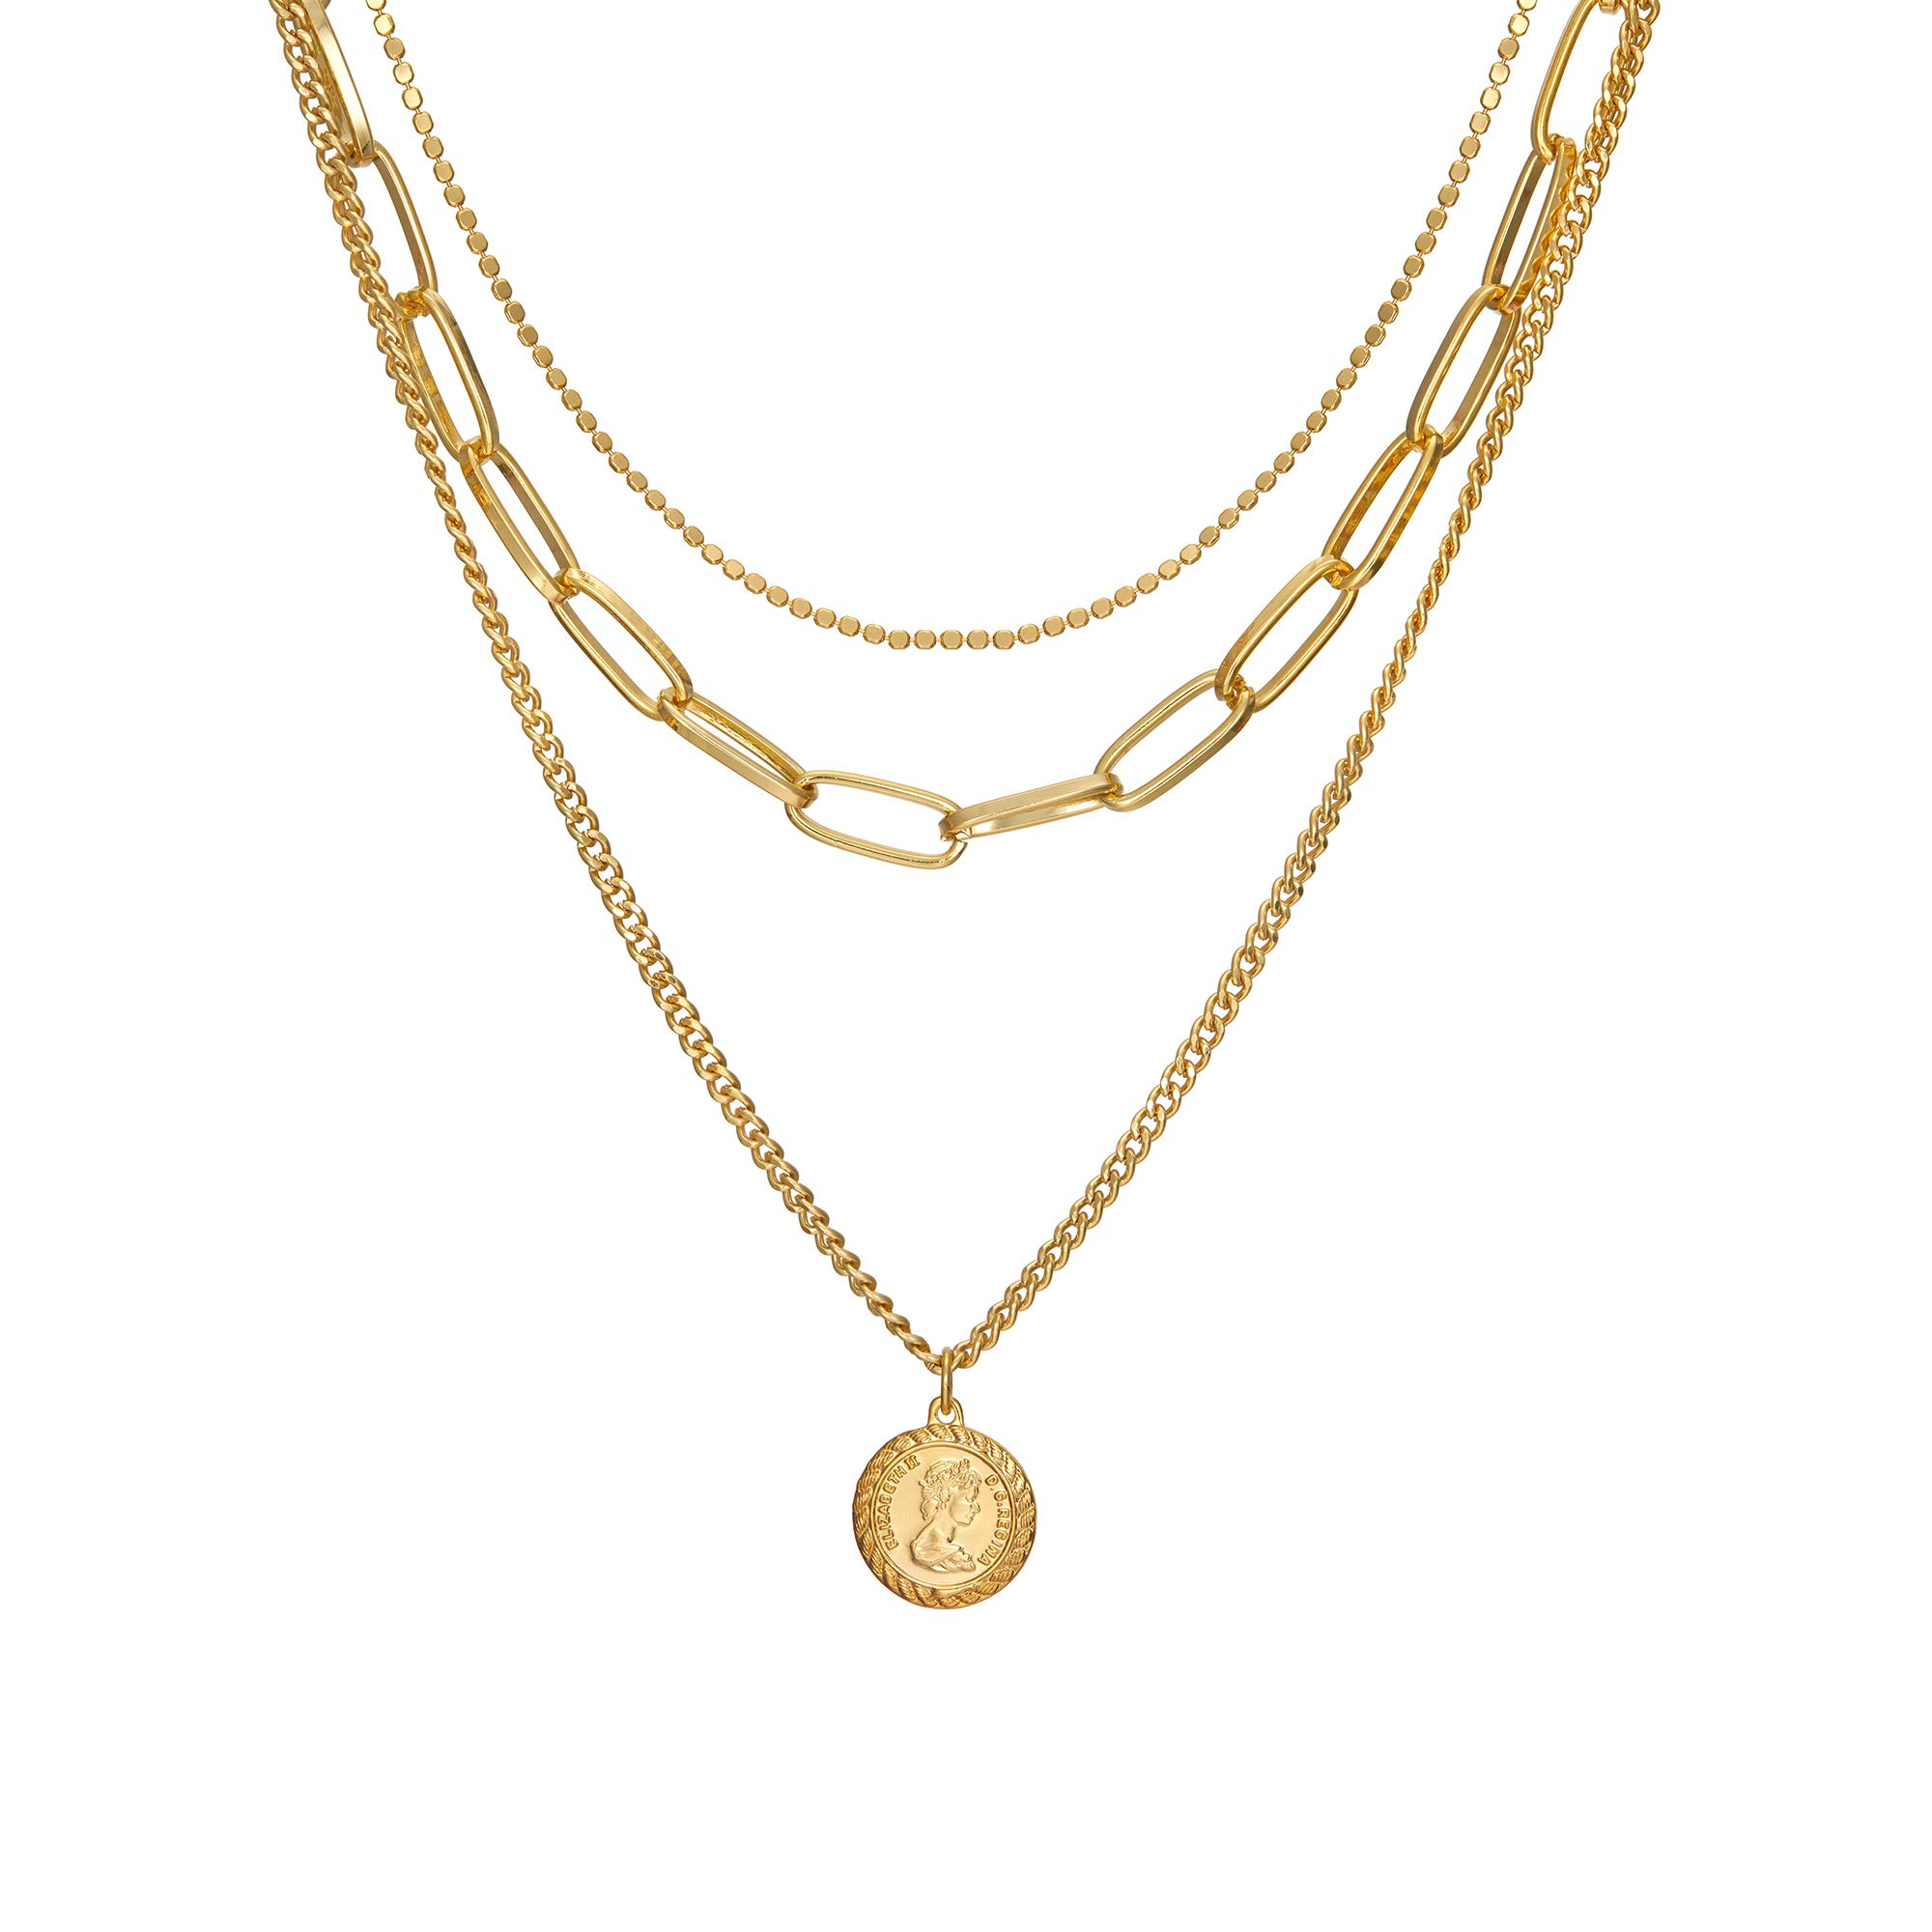 ACC PLANET Layered Pendant Necklace 18K Gold Plated Queen Elizabeth Coin Disc Chain Vintage Valentine's Day Couples Mother's Day Sweater Necklace Gold Coin Necklace for Women Jewelry